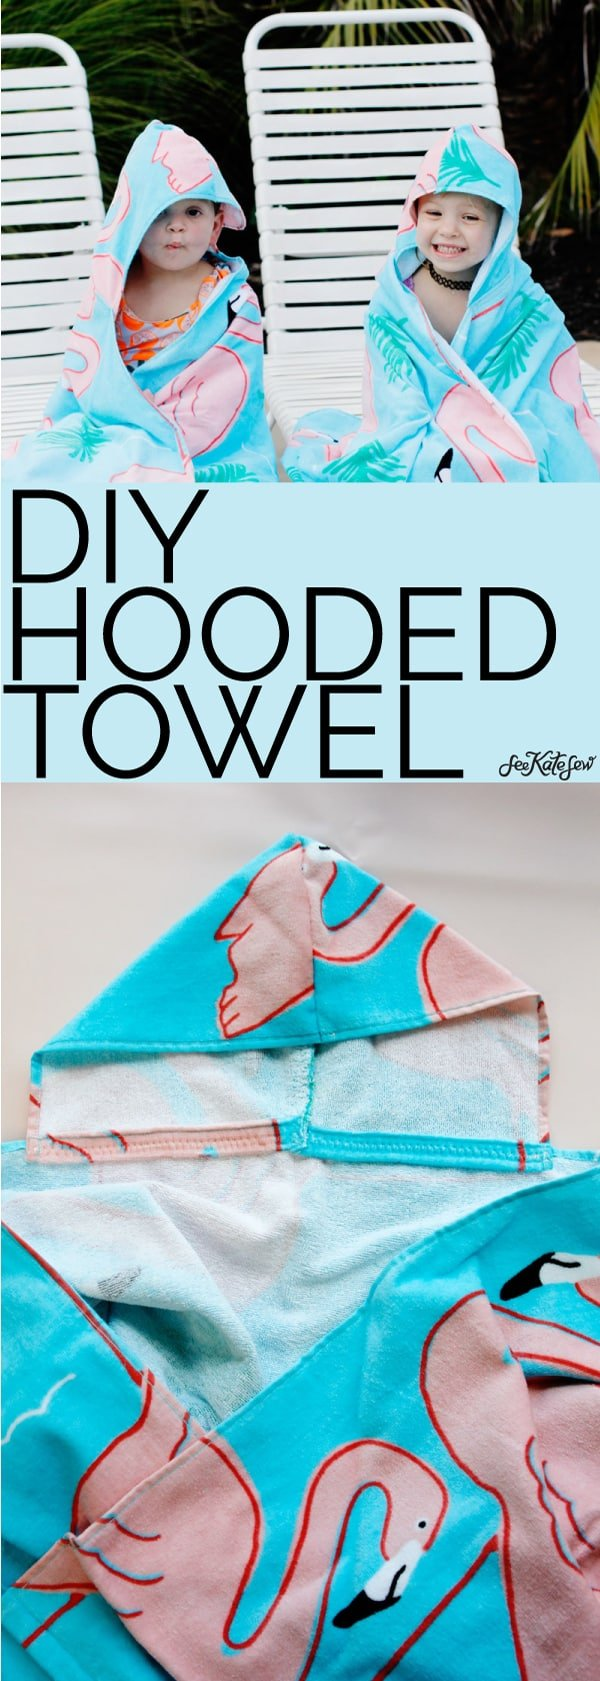 FREE PATTERN! DIY Hooded Towel | See Kate Sew